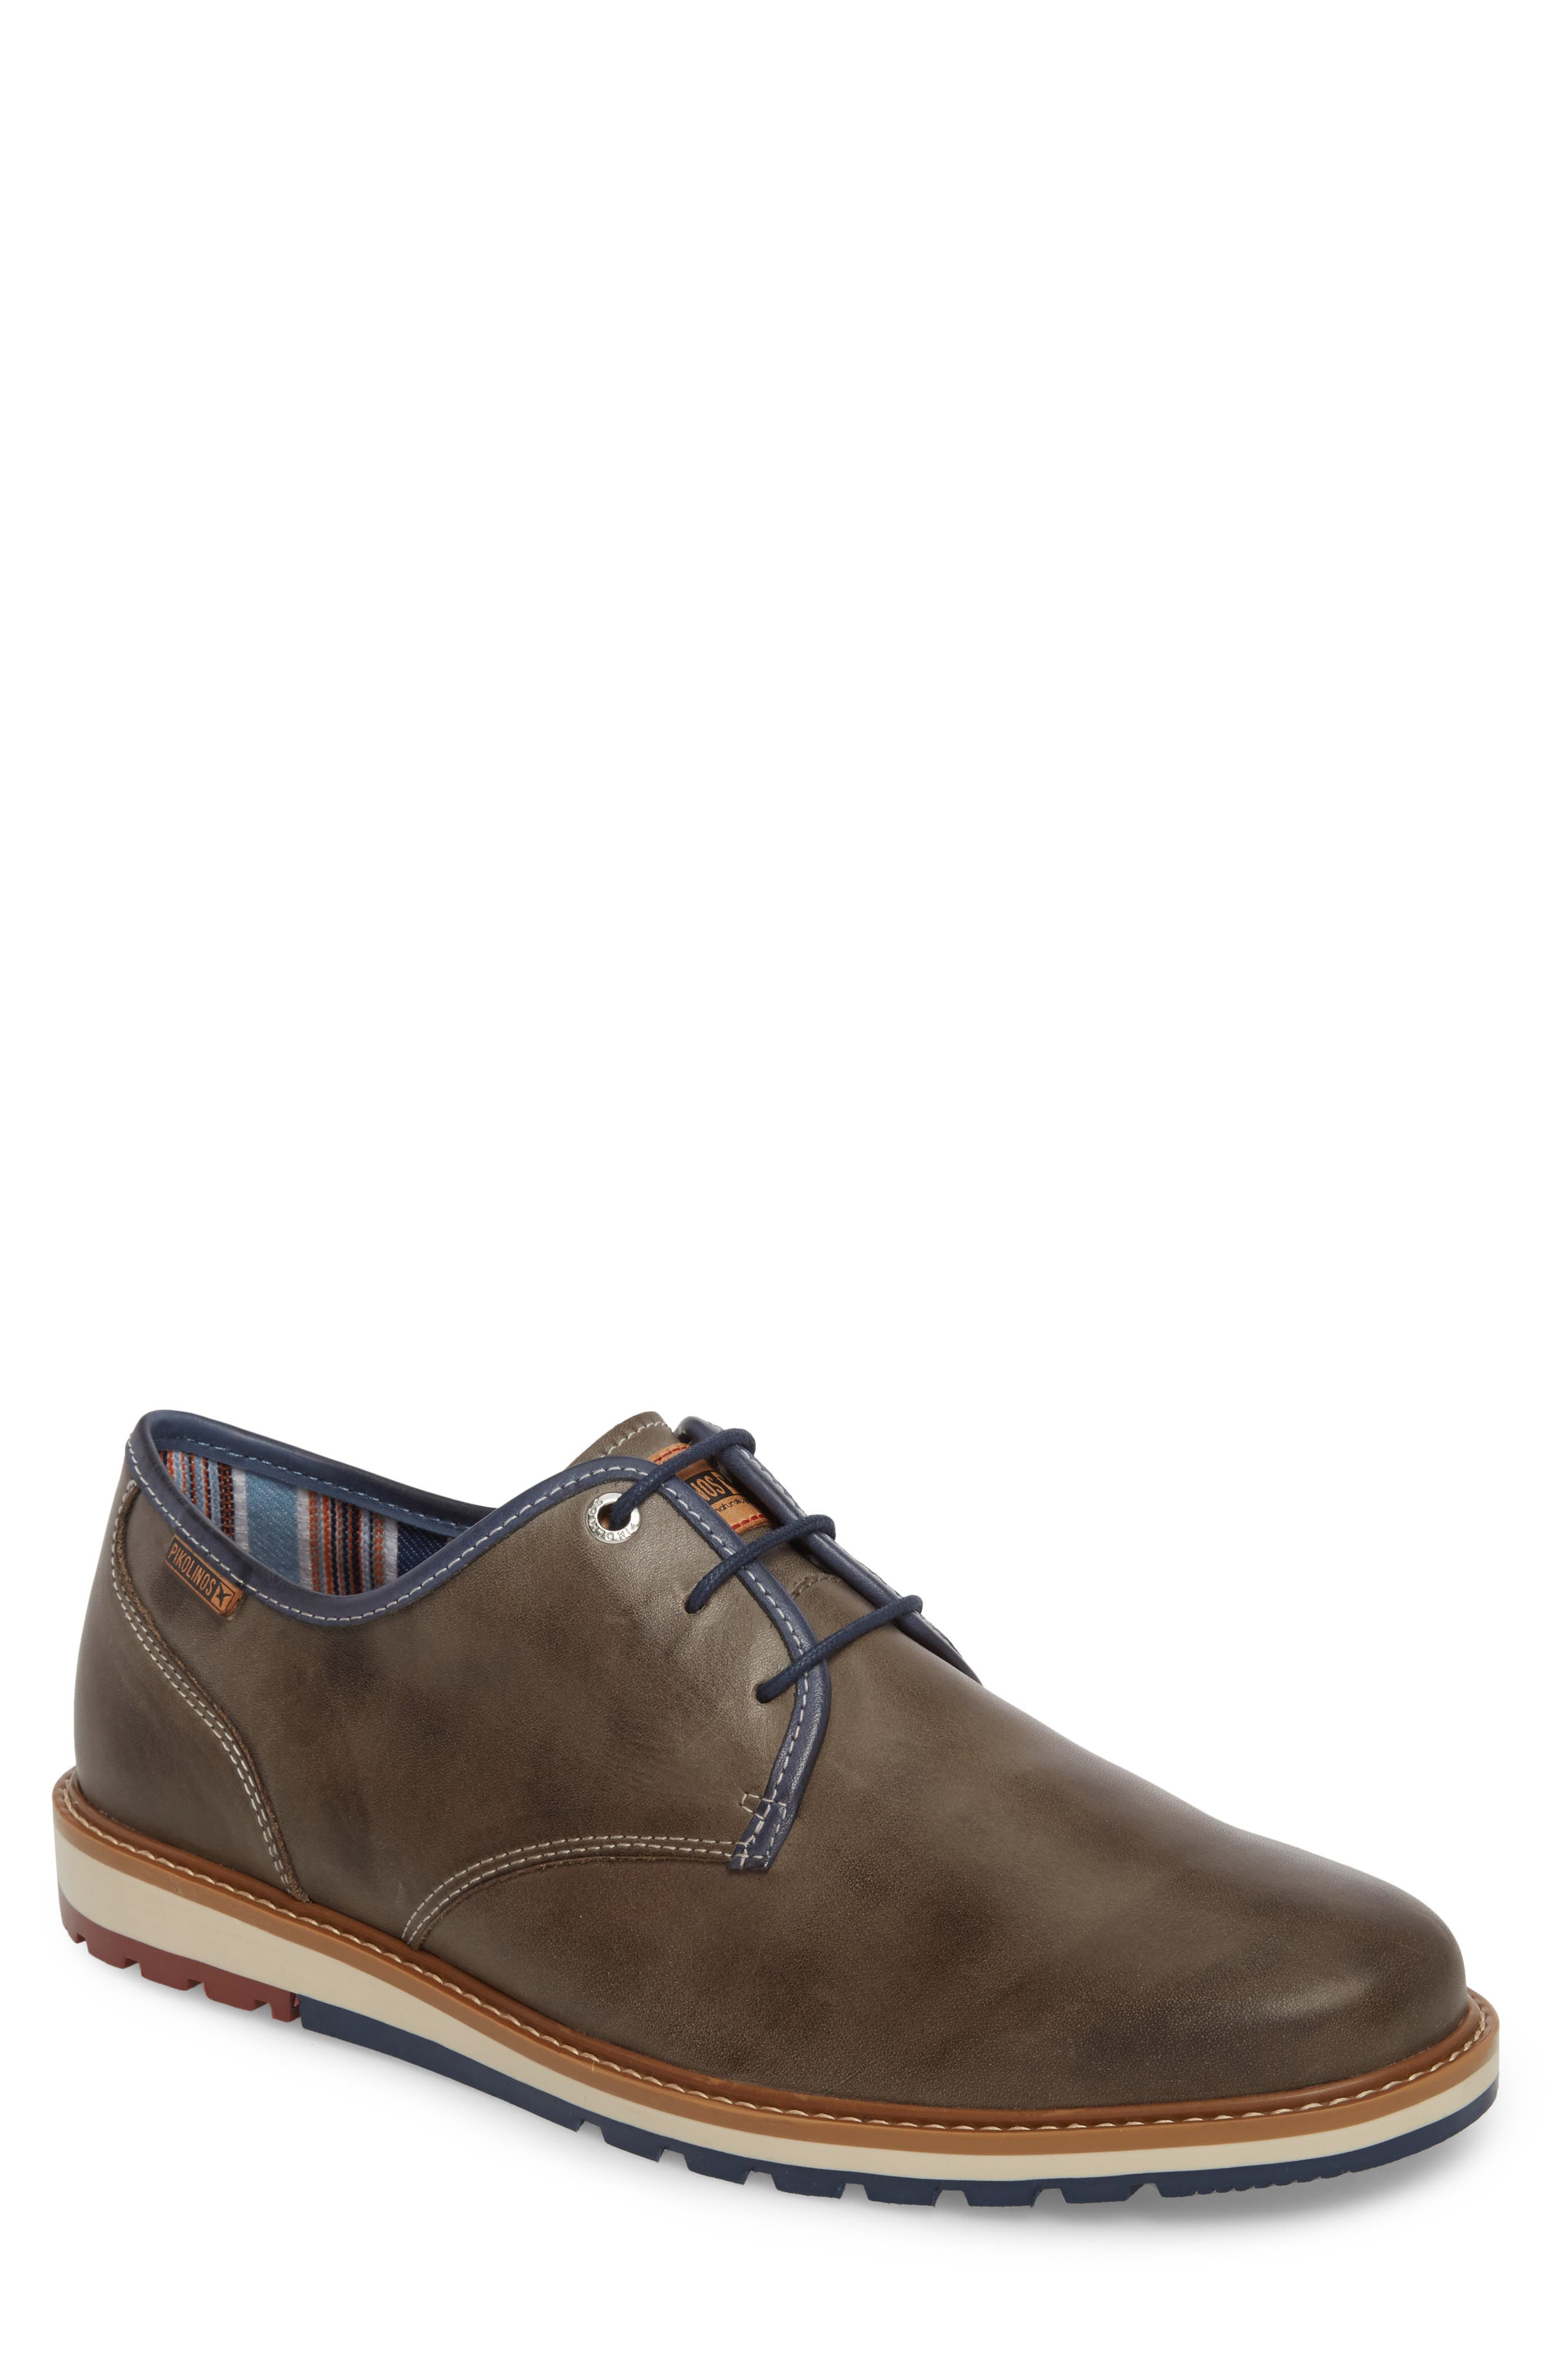 Berna Plain Toe Oxford,                             Main thumbnail 1, color,                             020